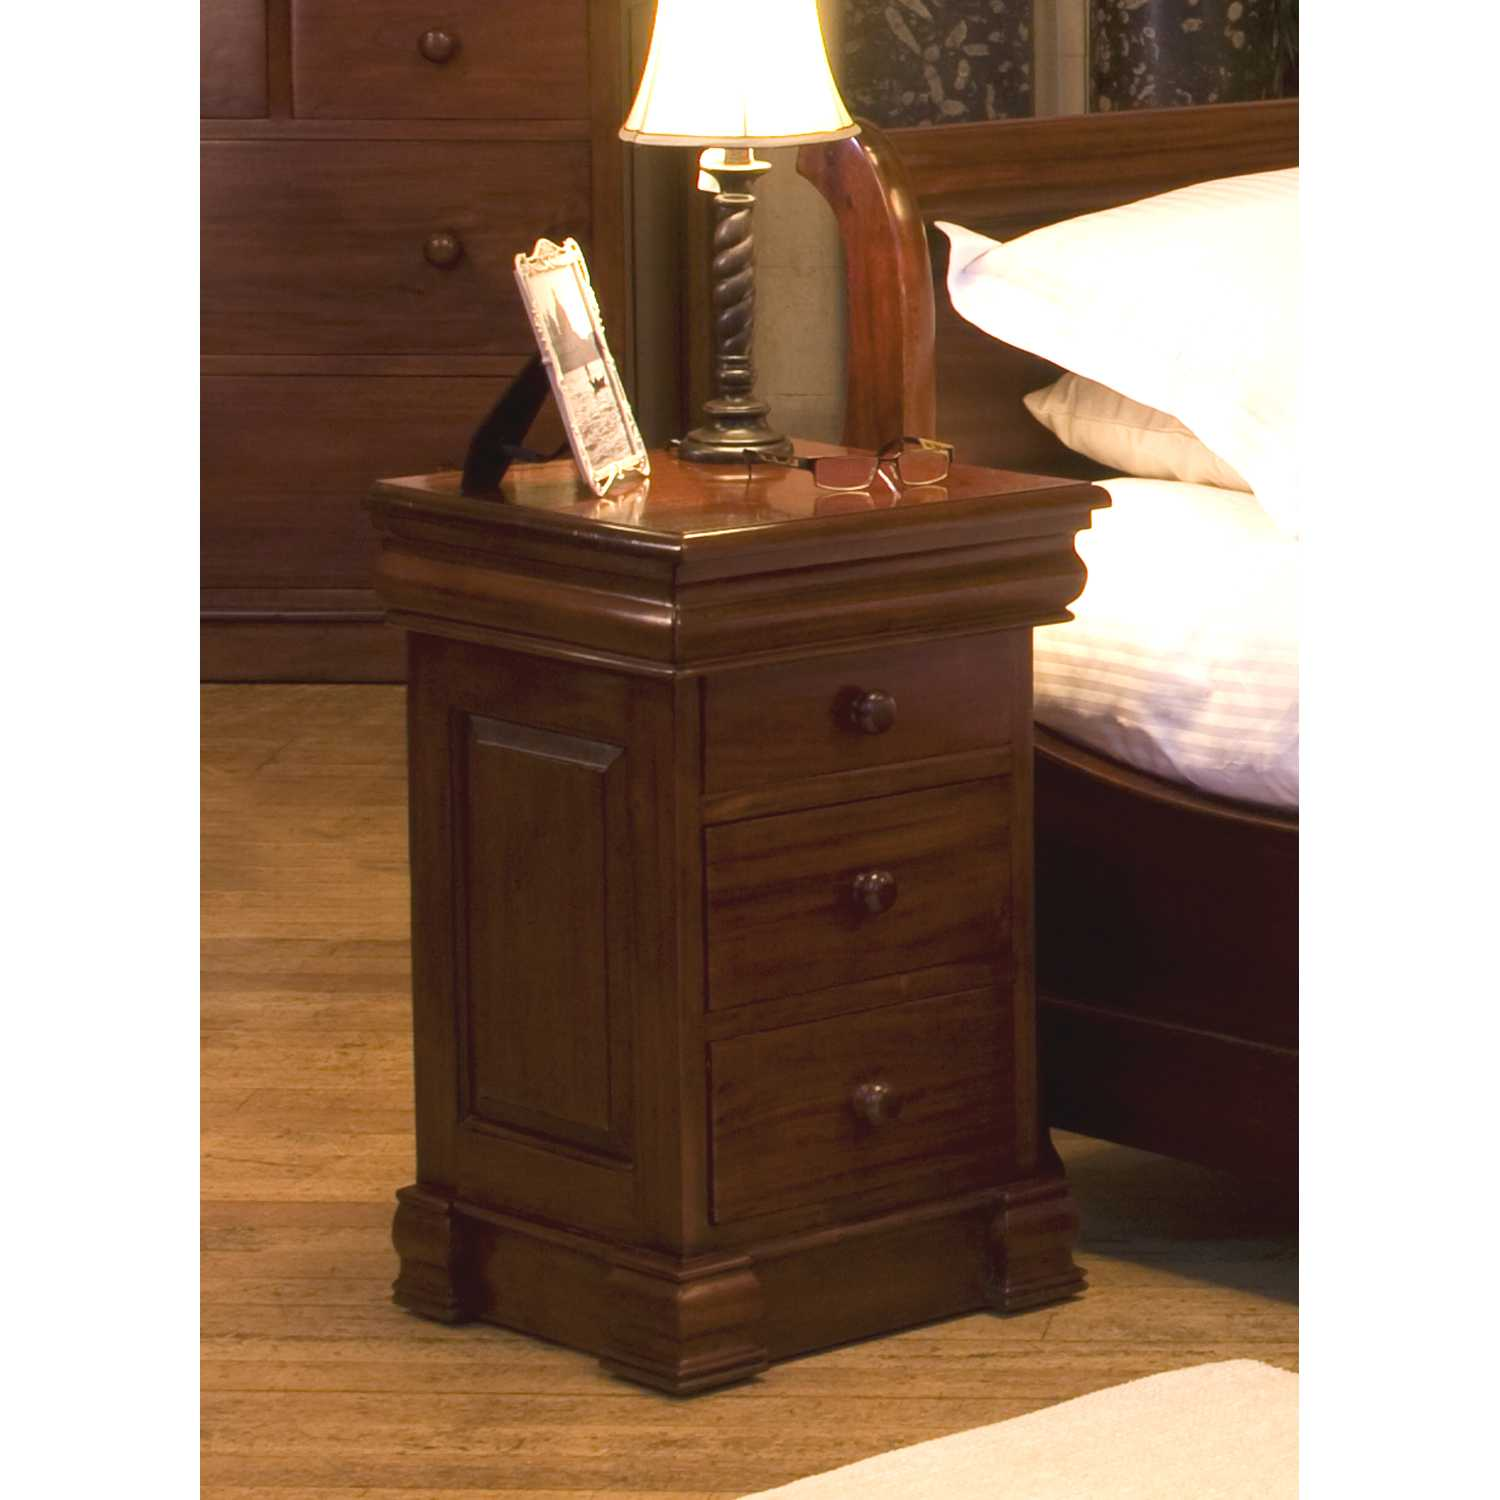 mahogany 4 drawer lamp bedside table traditional dark wood finish